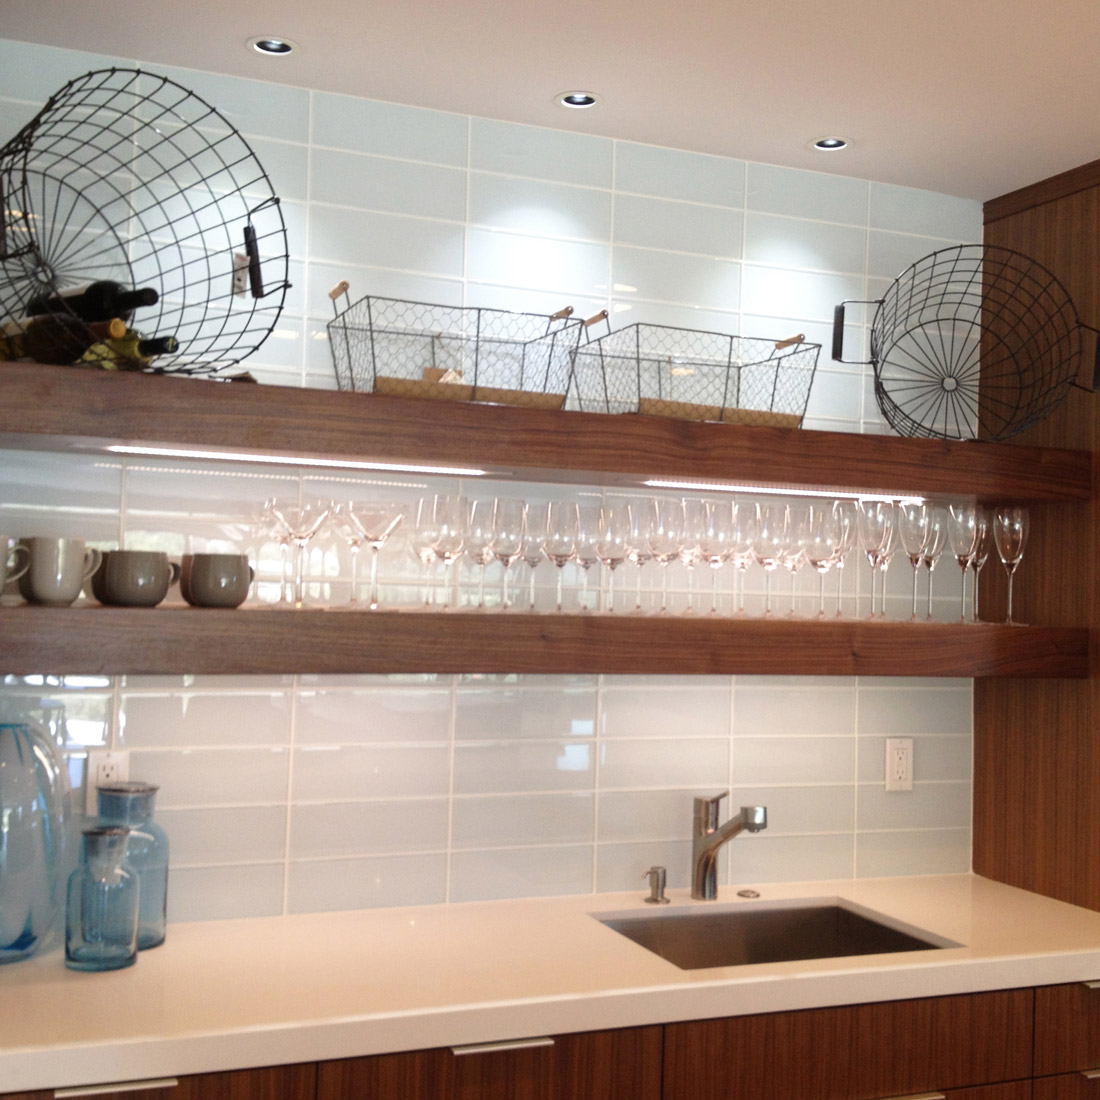 Modern Kitchen Remodel With Walnut Open Shelves And Large Format Glass Tile  Backsplash Display Glassware Above ...